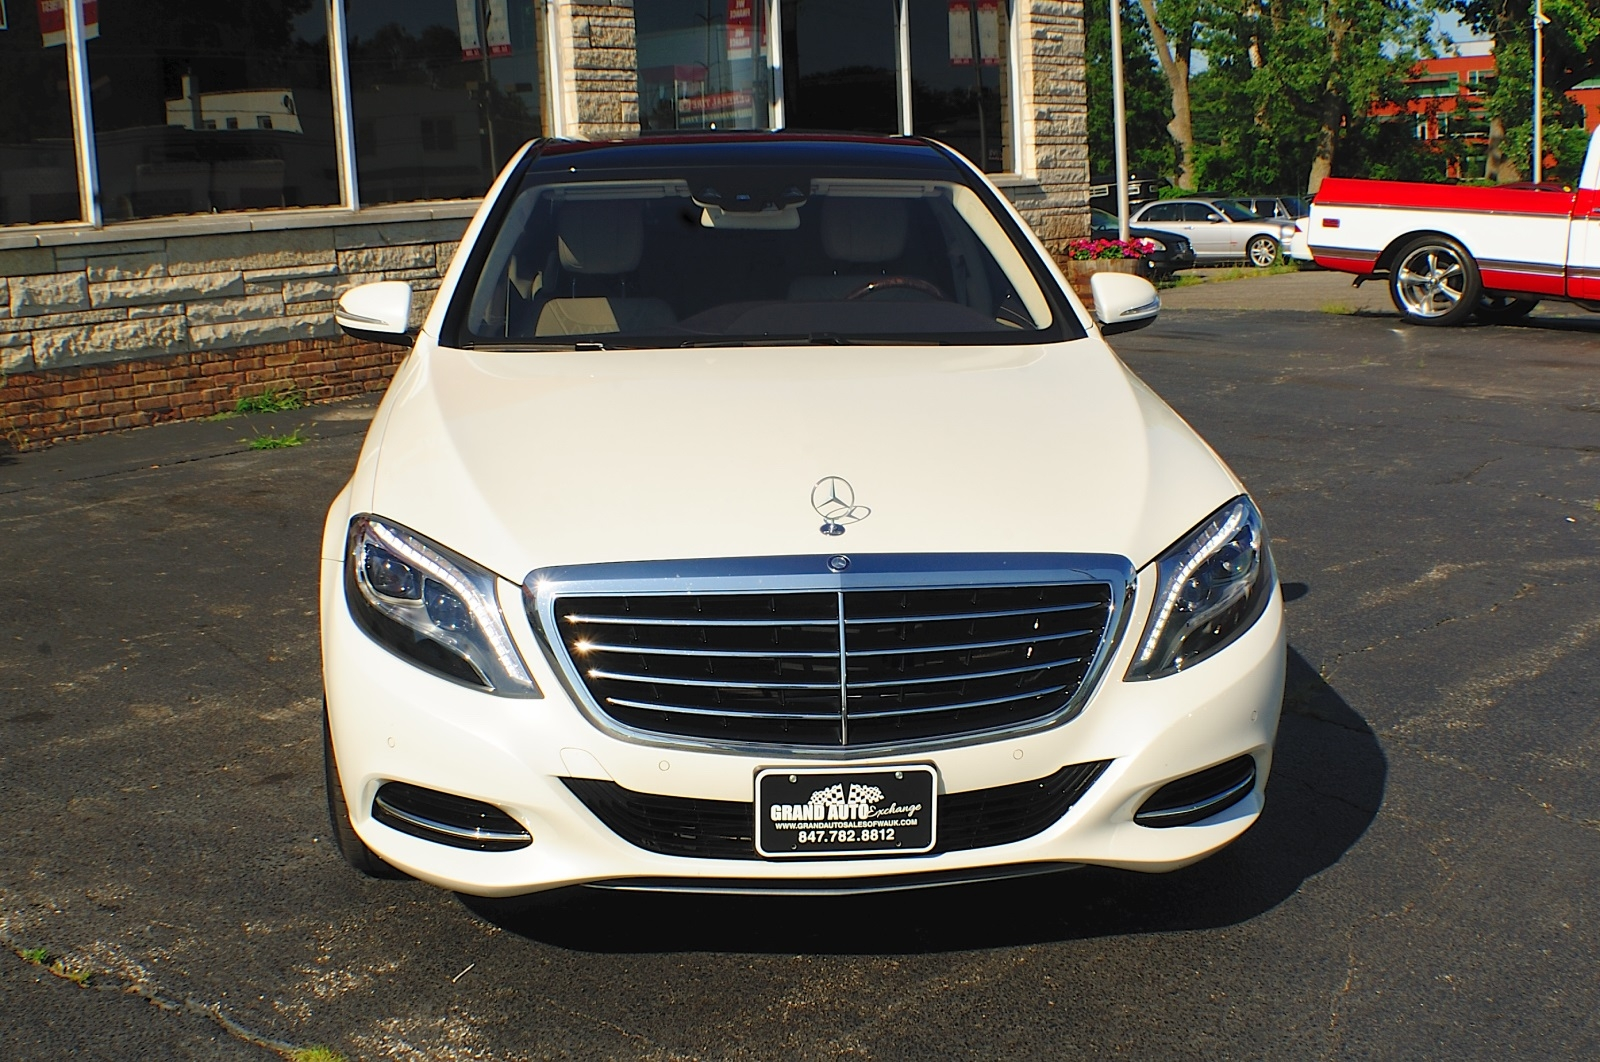 mercedes benz 2014 s550 white images galleries with a bite. Black Bedroom Furniture Sets. Home Design Ideas